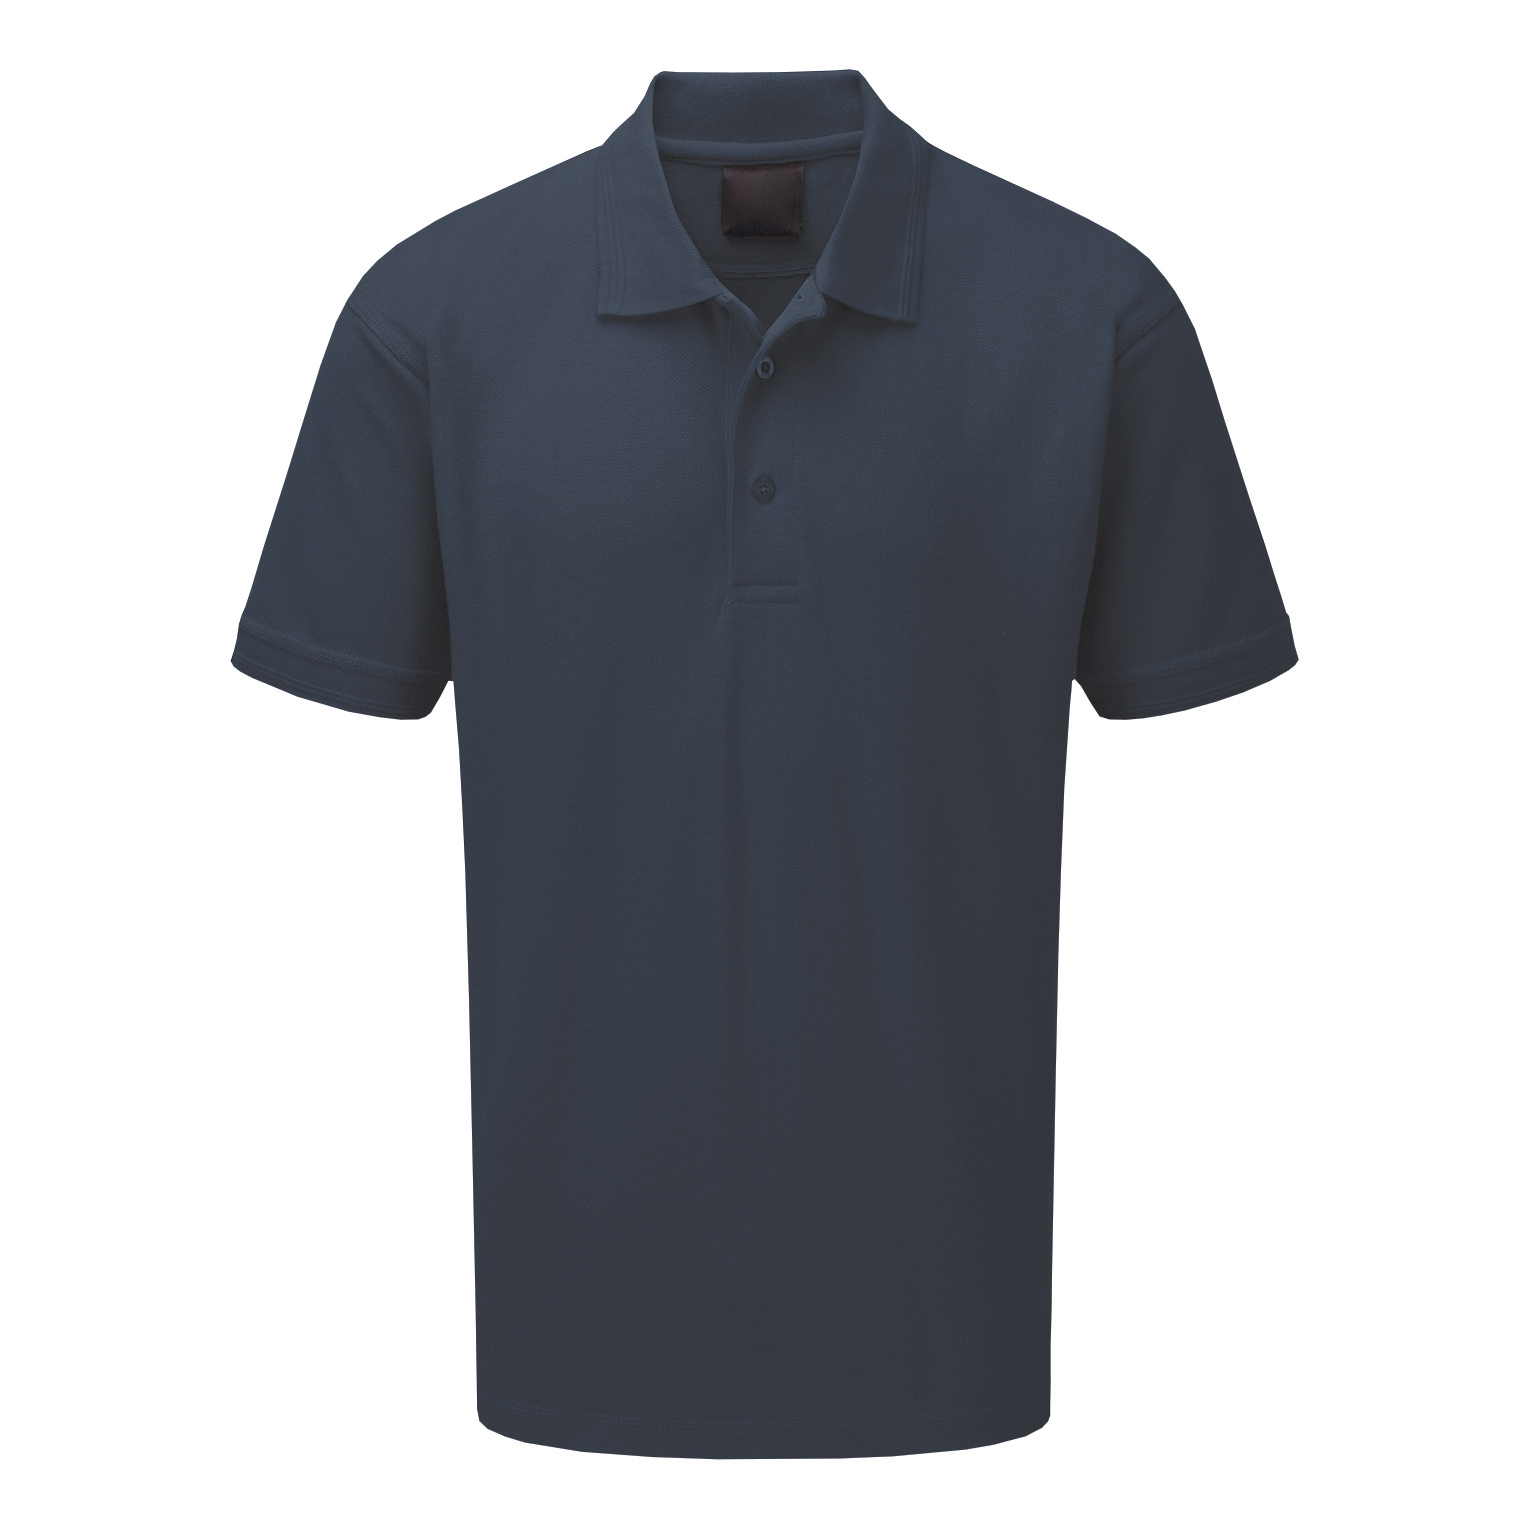 Premium Polo Shirt Triple Button 220gsm Polycotton XL Graphite Ref CLPKSGYXL *Approx 3 Day Leadtime*